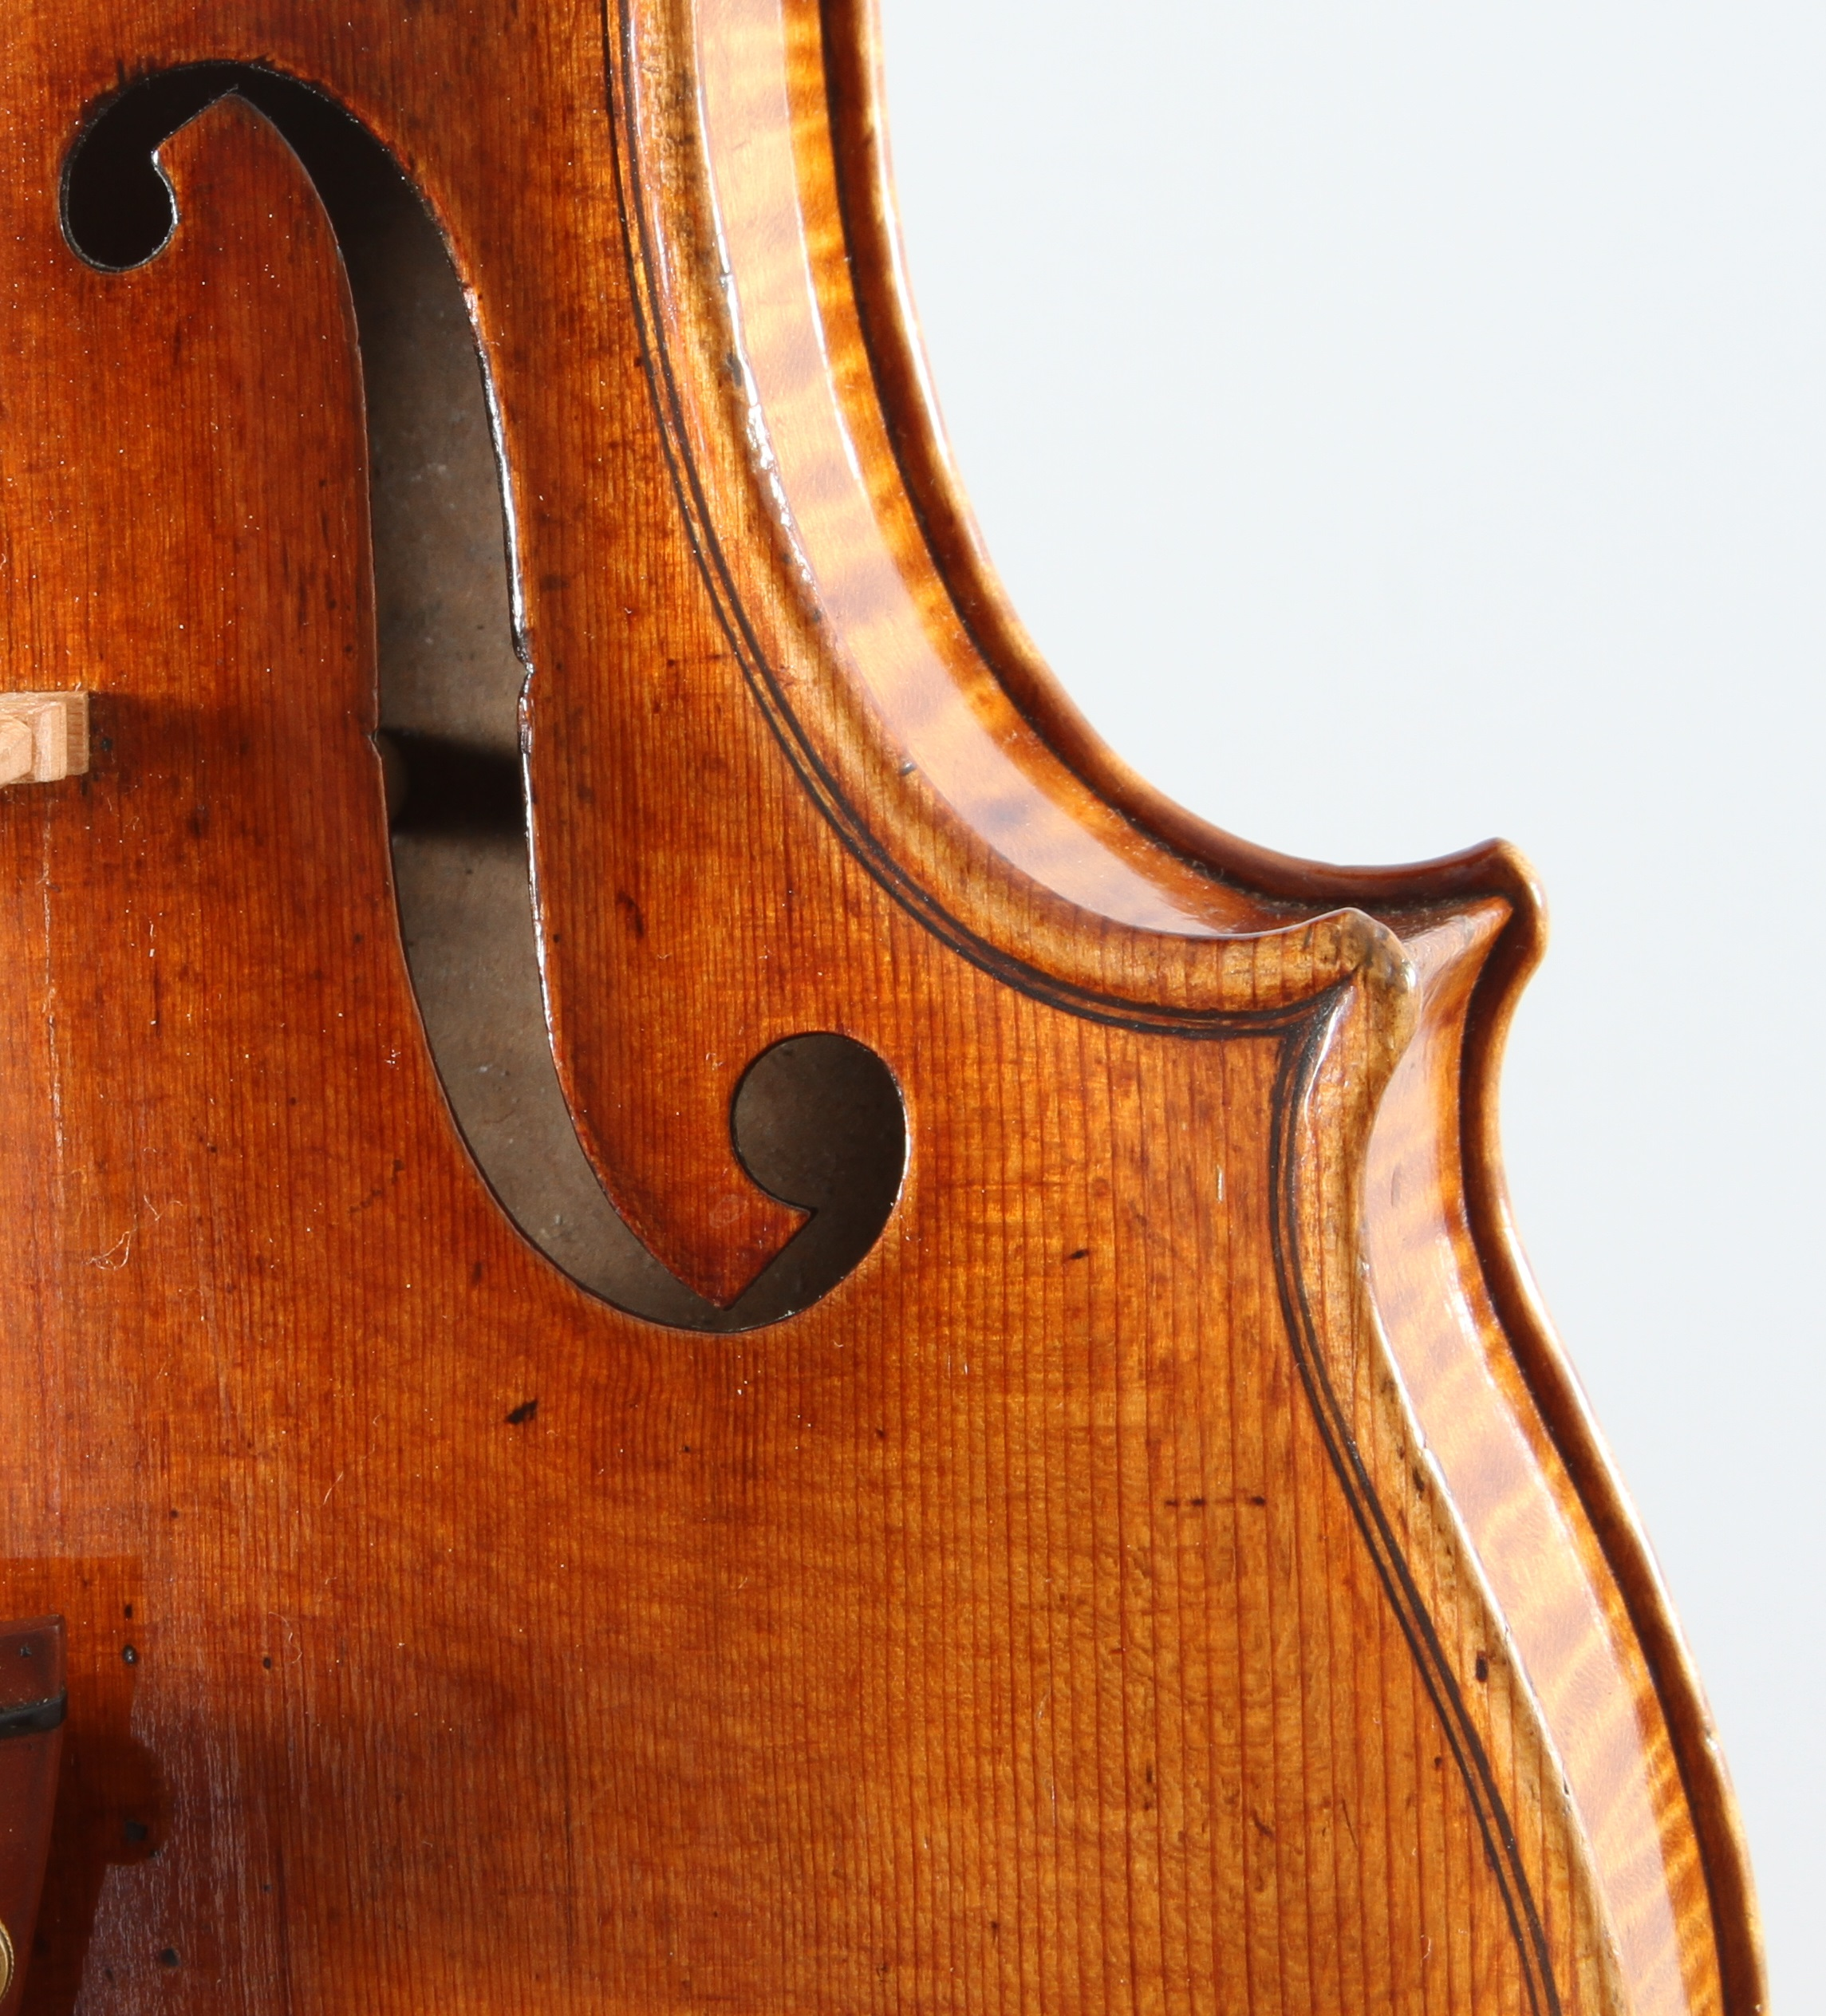 details of a corner from the Molitor violin by Antonio Stradivari, dated 1697